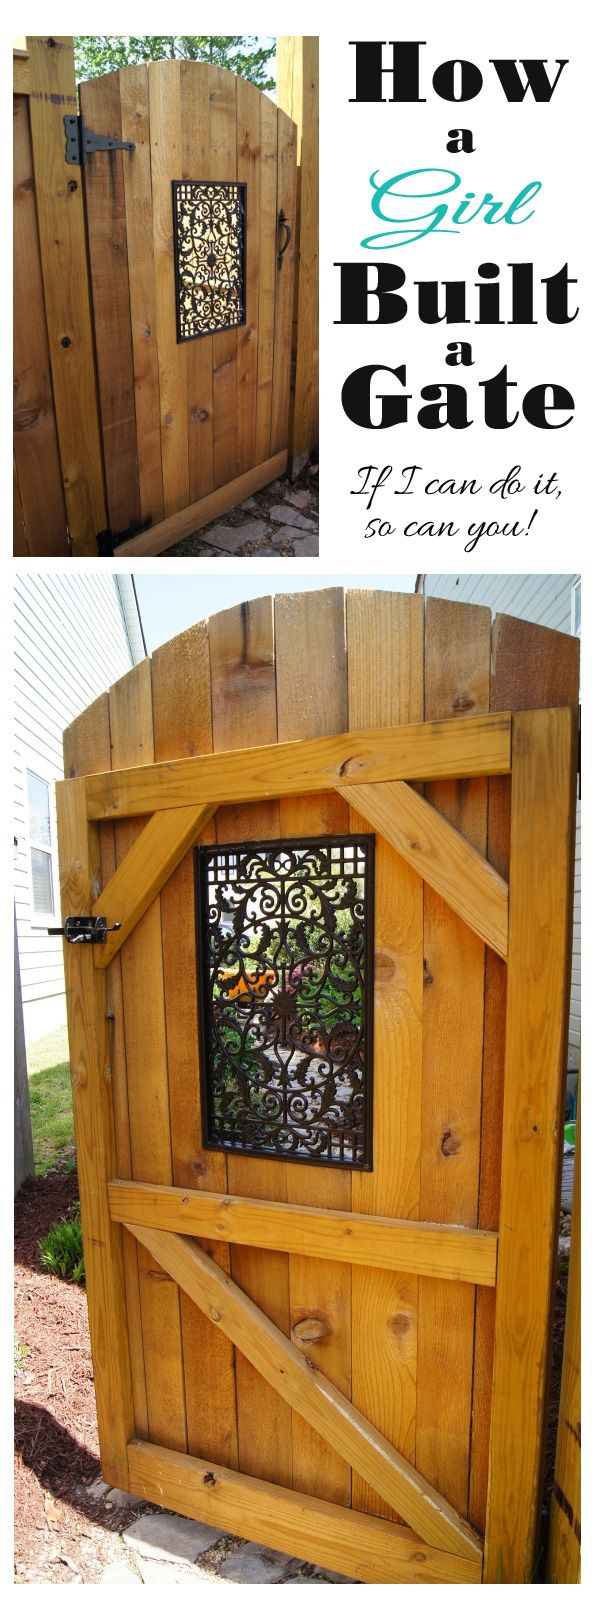 wood fence gate designs how to build a gate with a decorative window by confessions of a serial do - Fence Gate Design Ideas